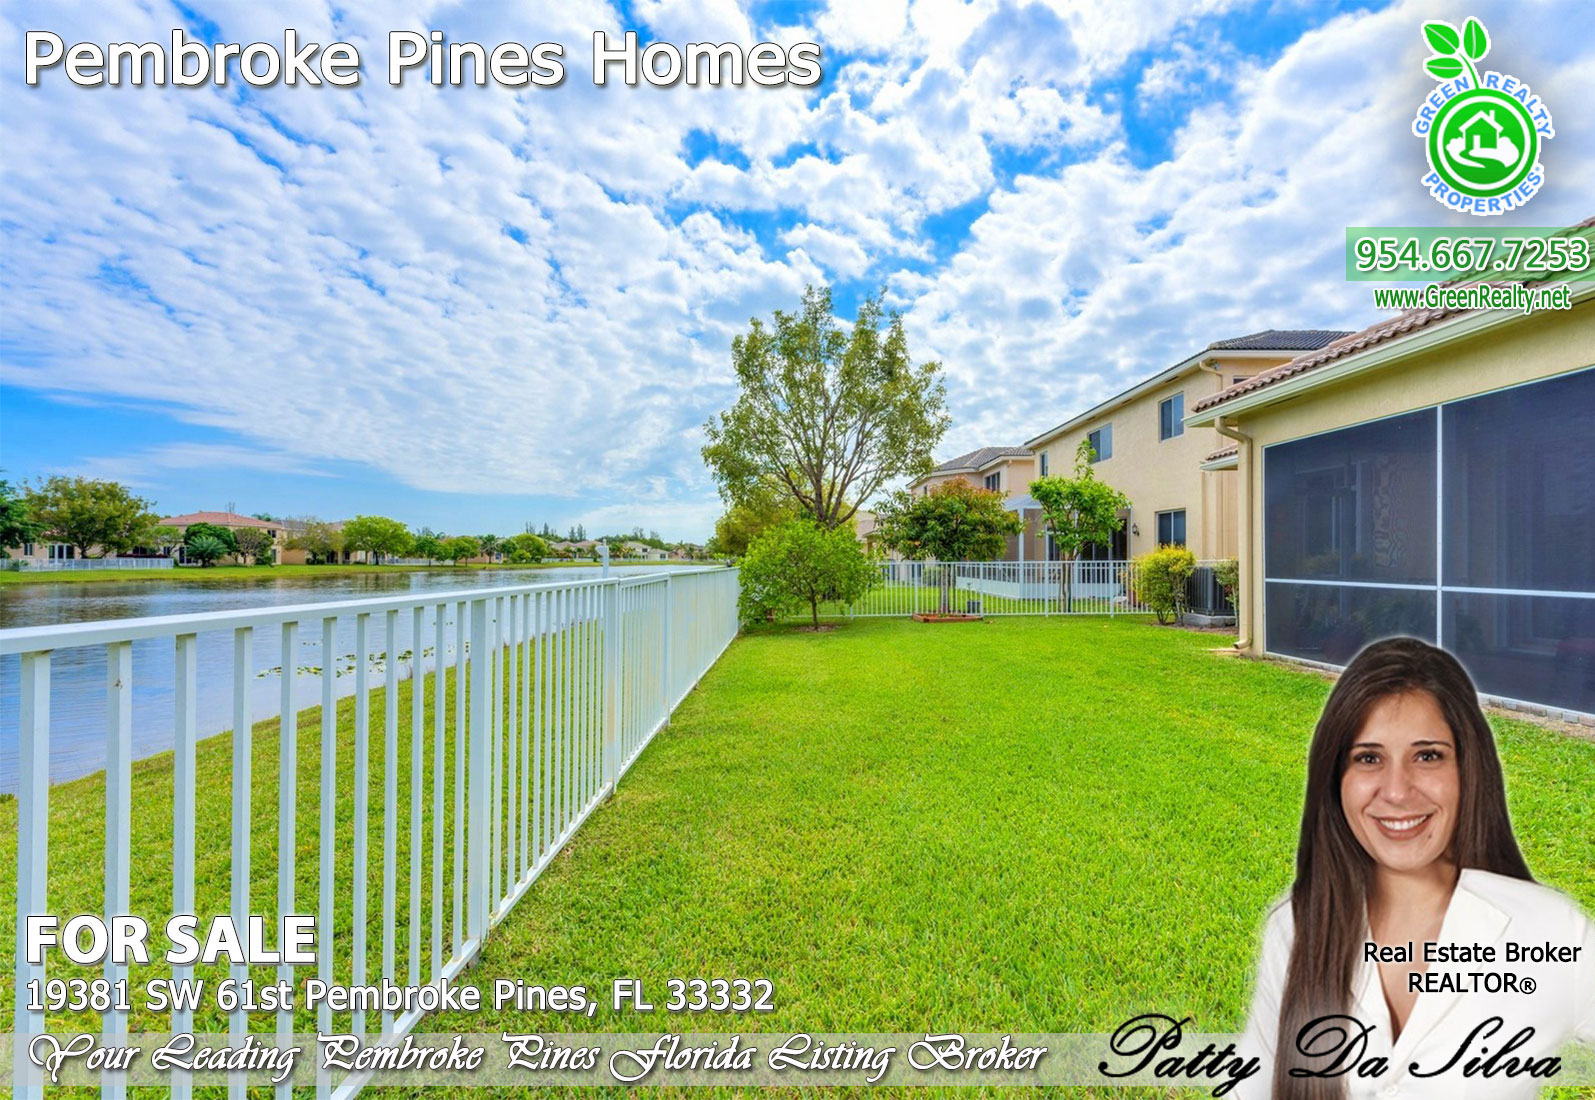 pembroke-pines-real-estate-agent